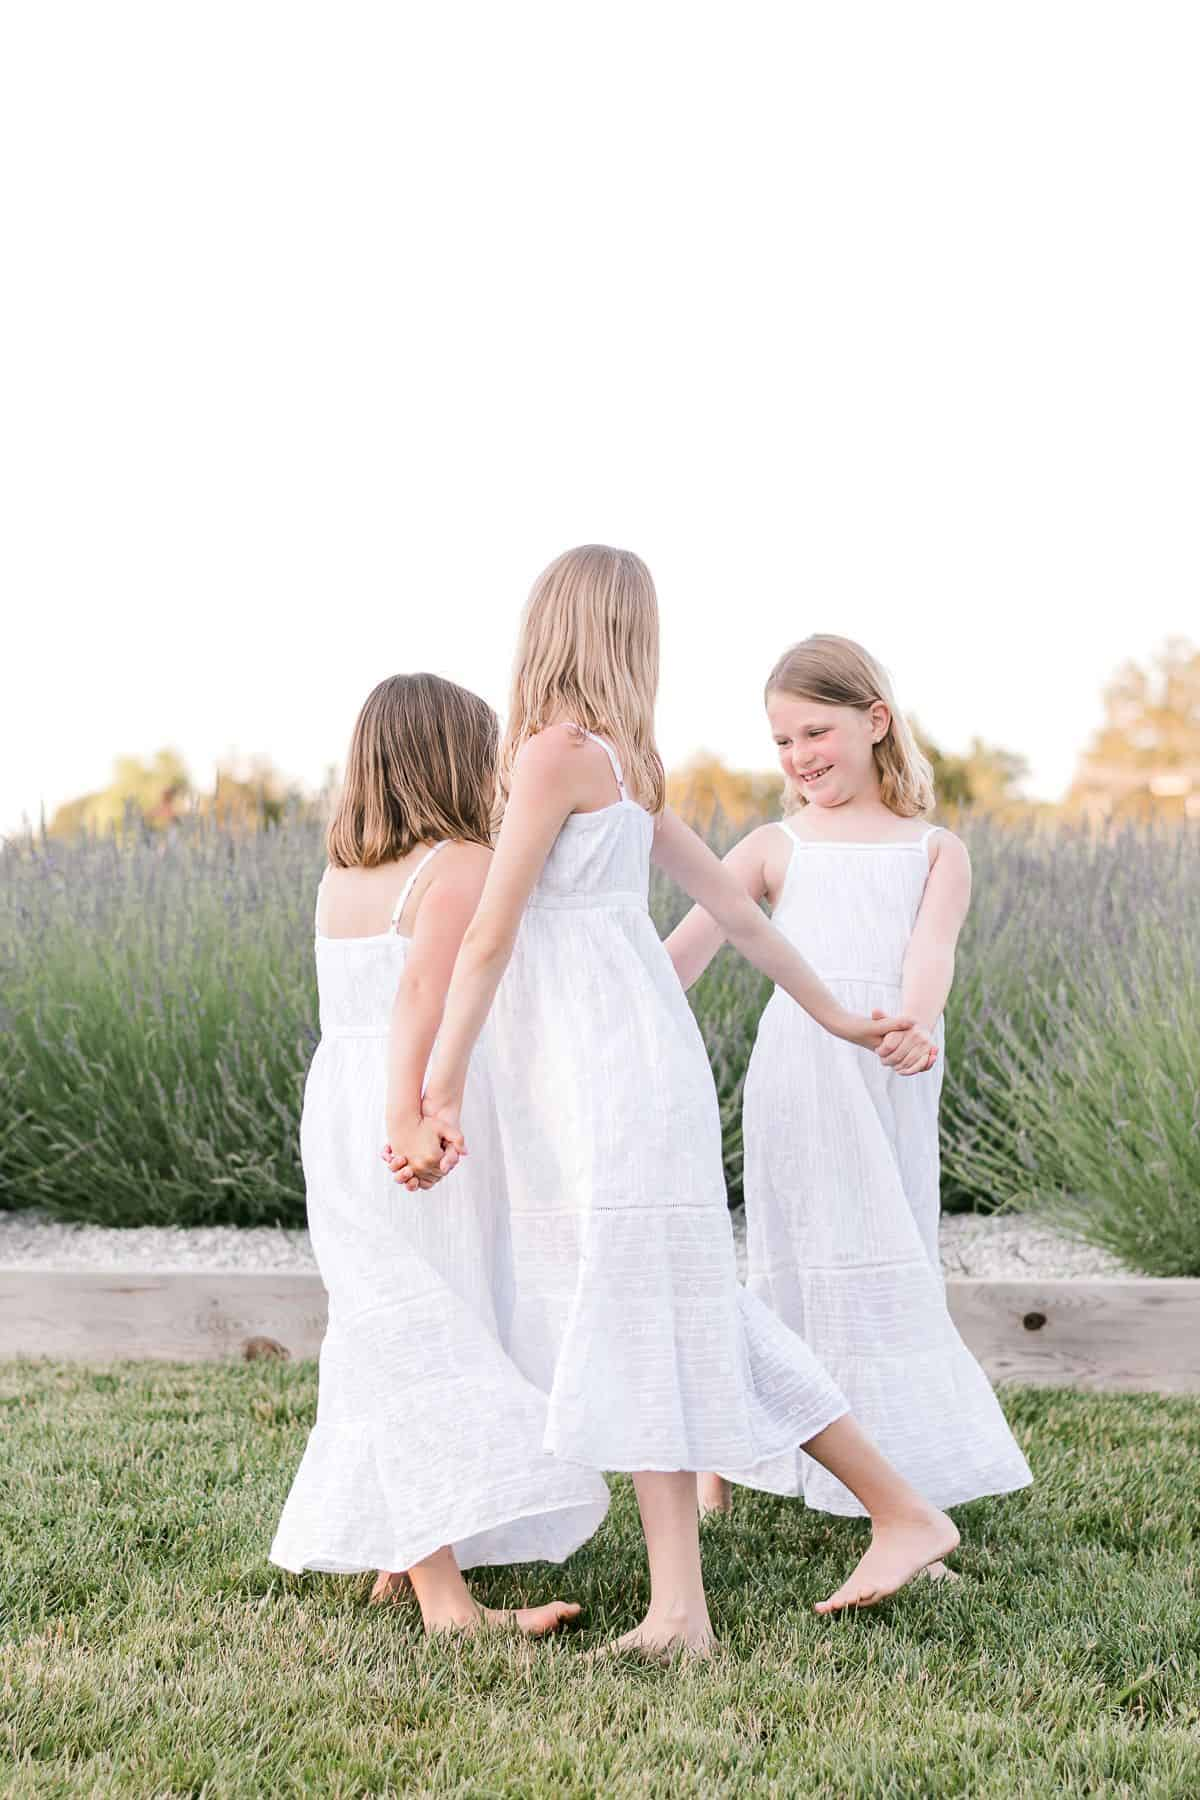 Three little girls in white dresses dancing in a field of english lavender.